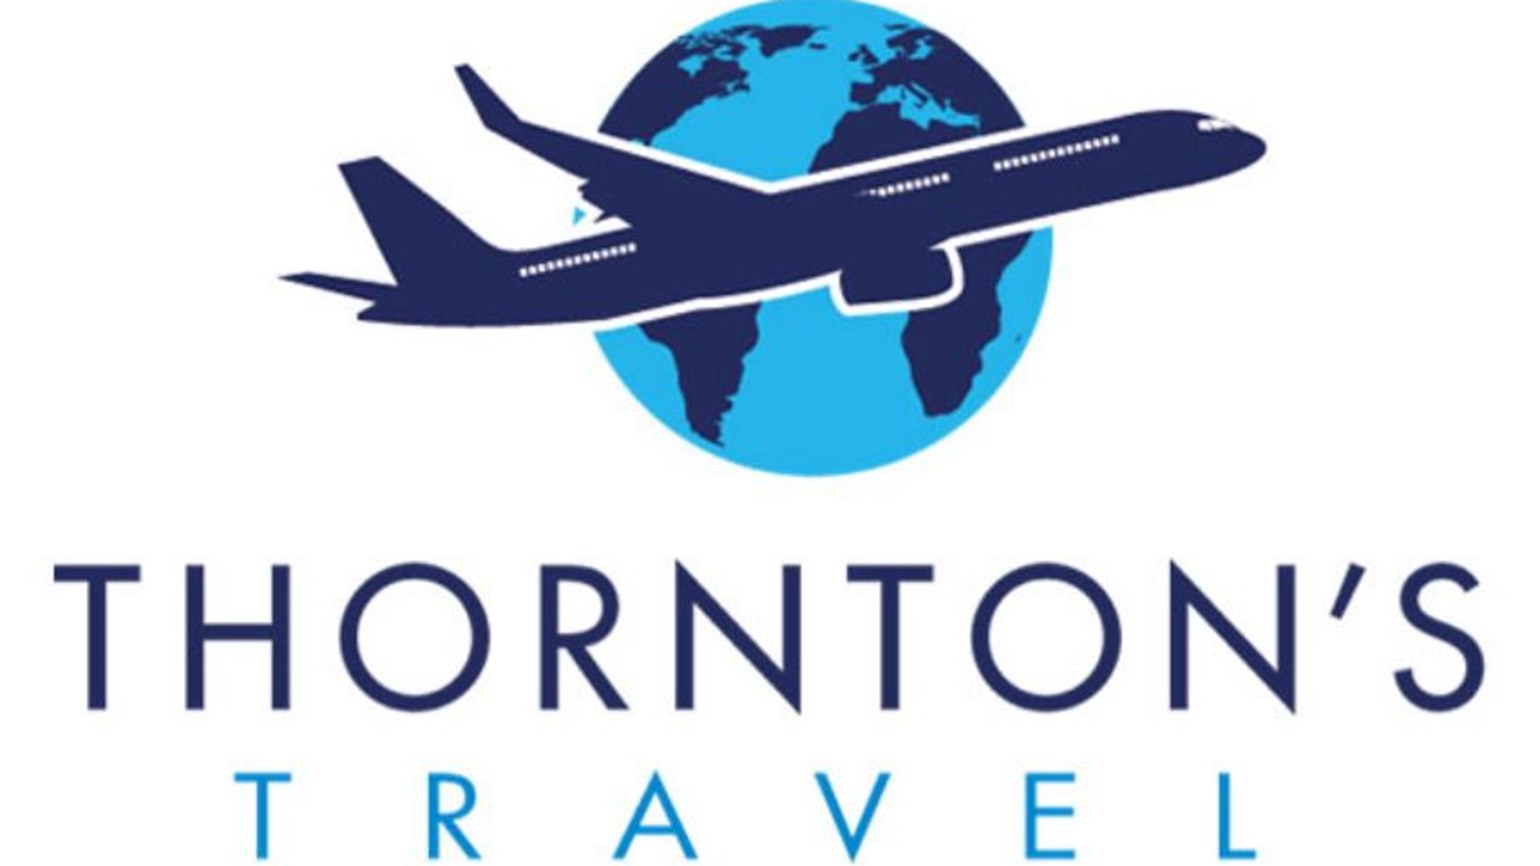 Thorntons Travel logo